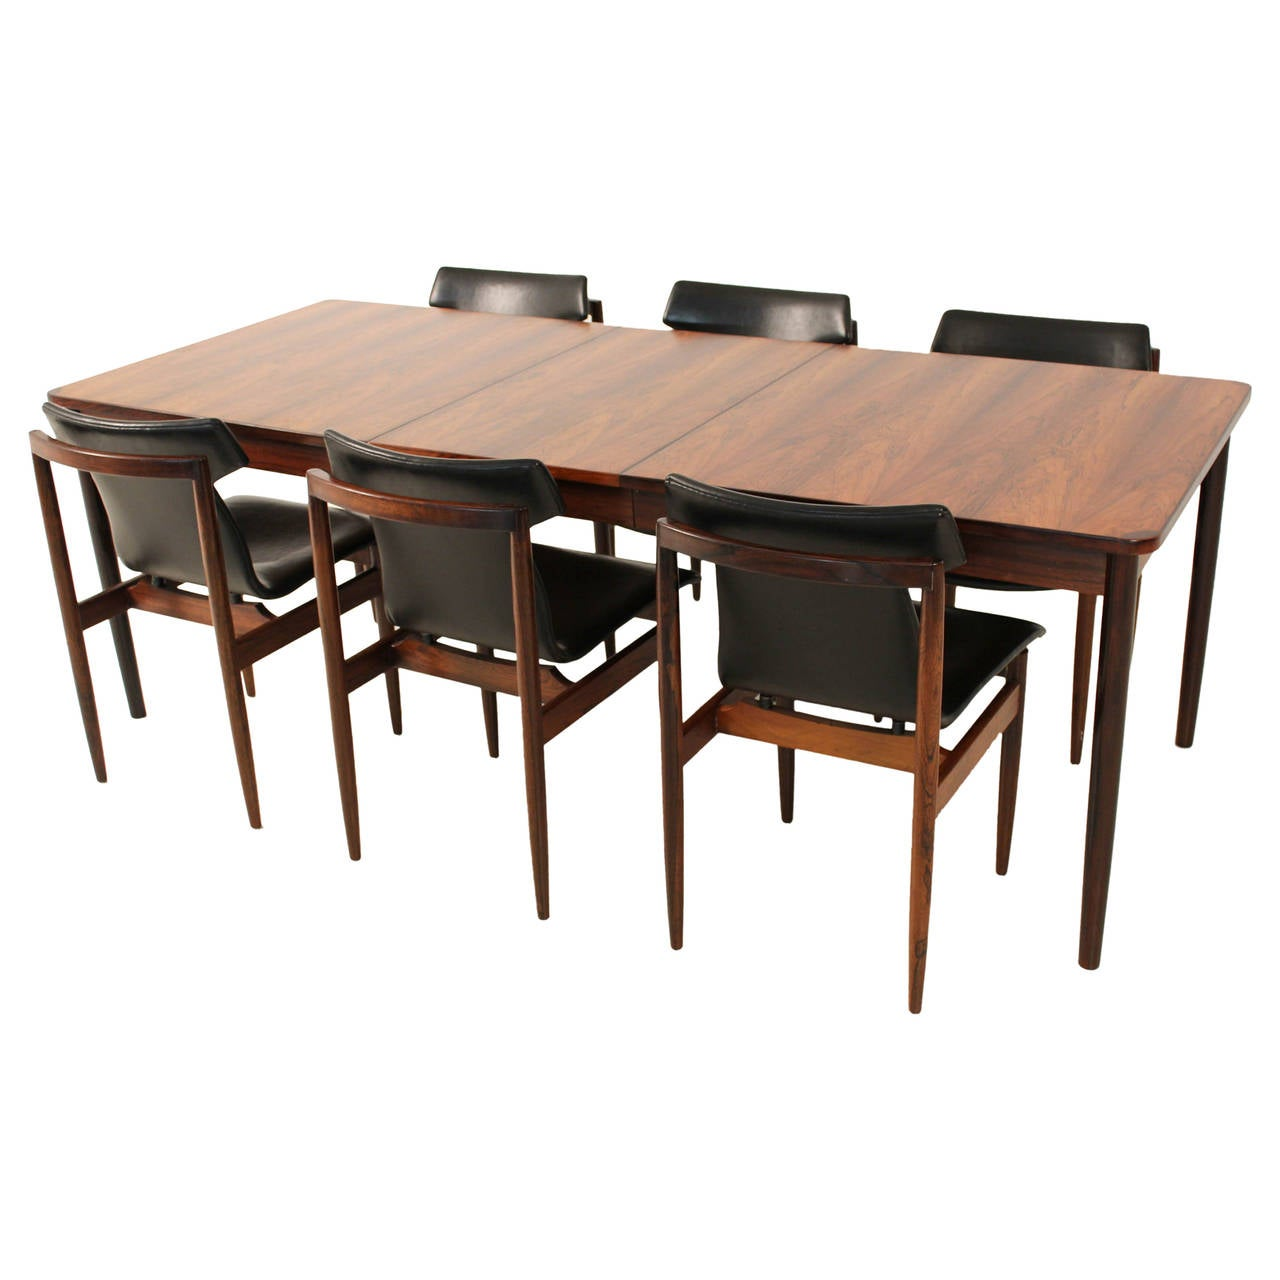 Mid century modern dining table by fristho at 1stdibs for Modern dining room table